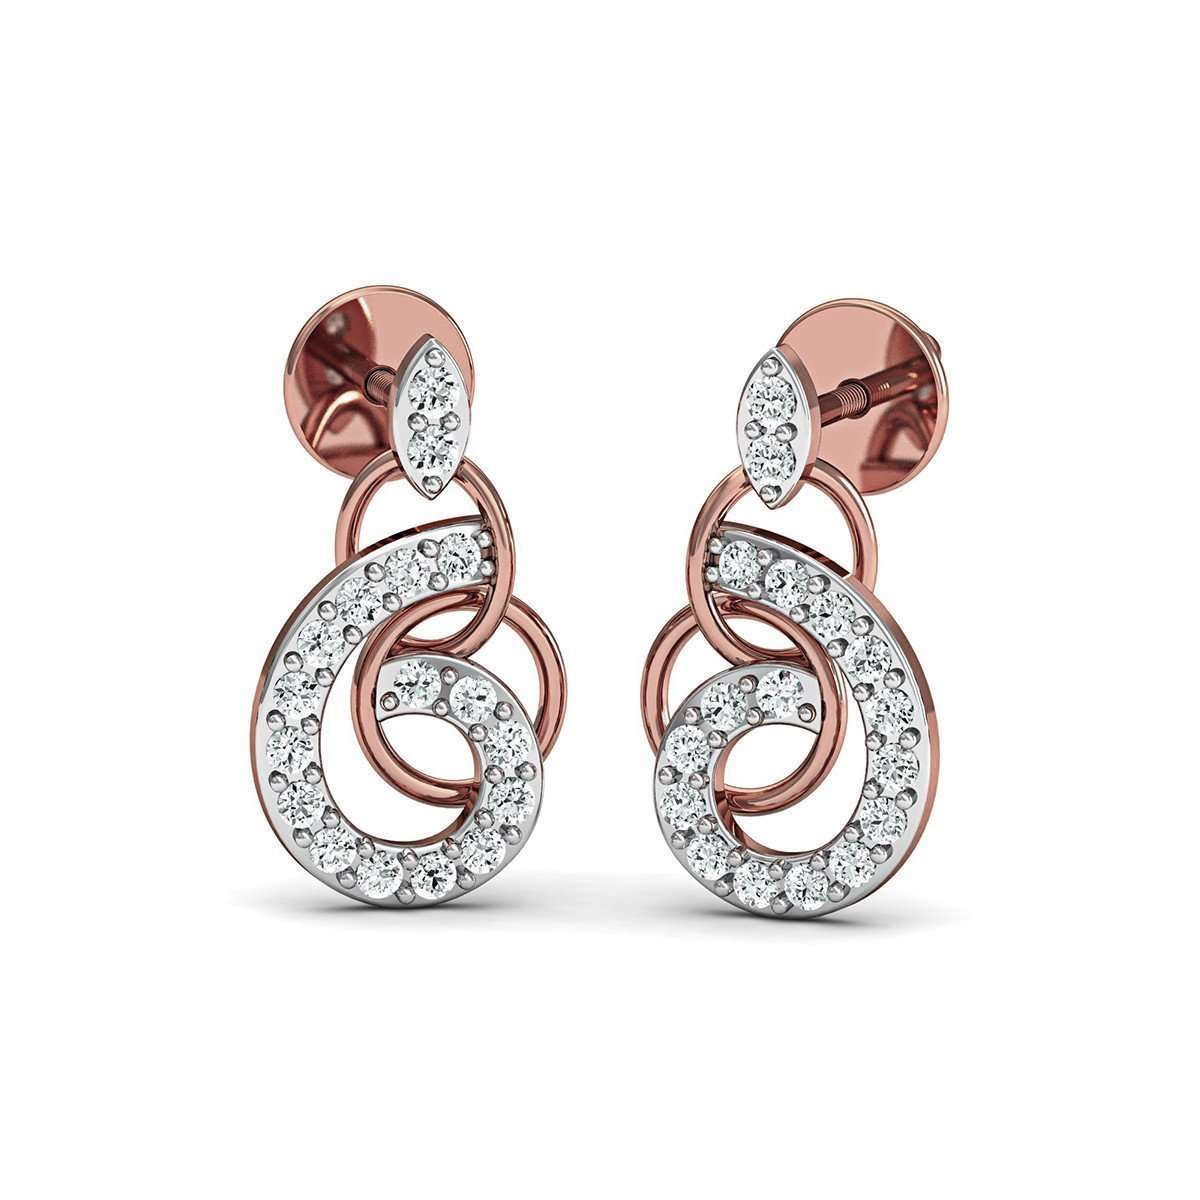 14kt Rose Gold and Diamond Pave Earrings-Diamoire Jewels-JewelStreet EU